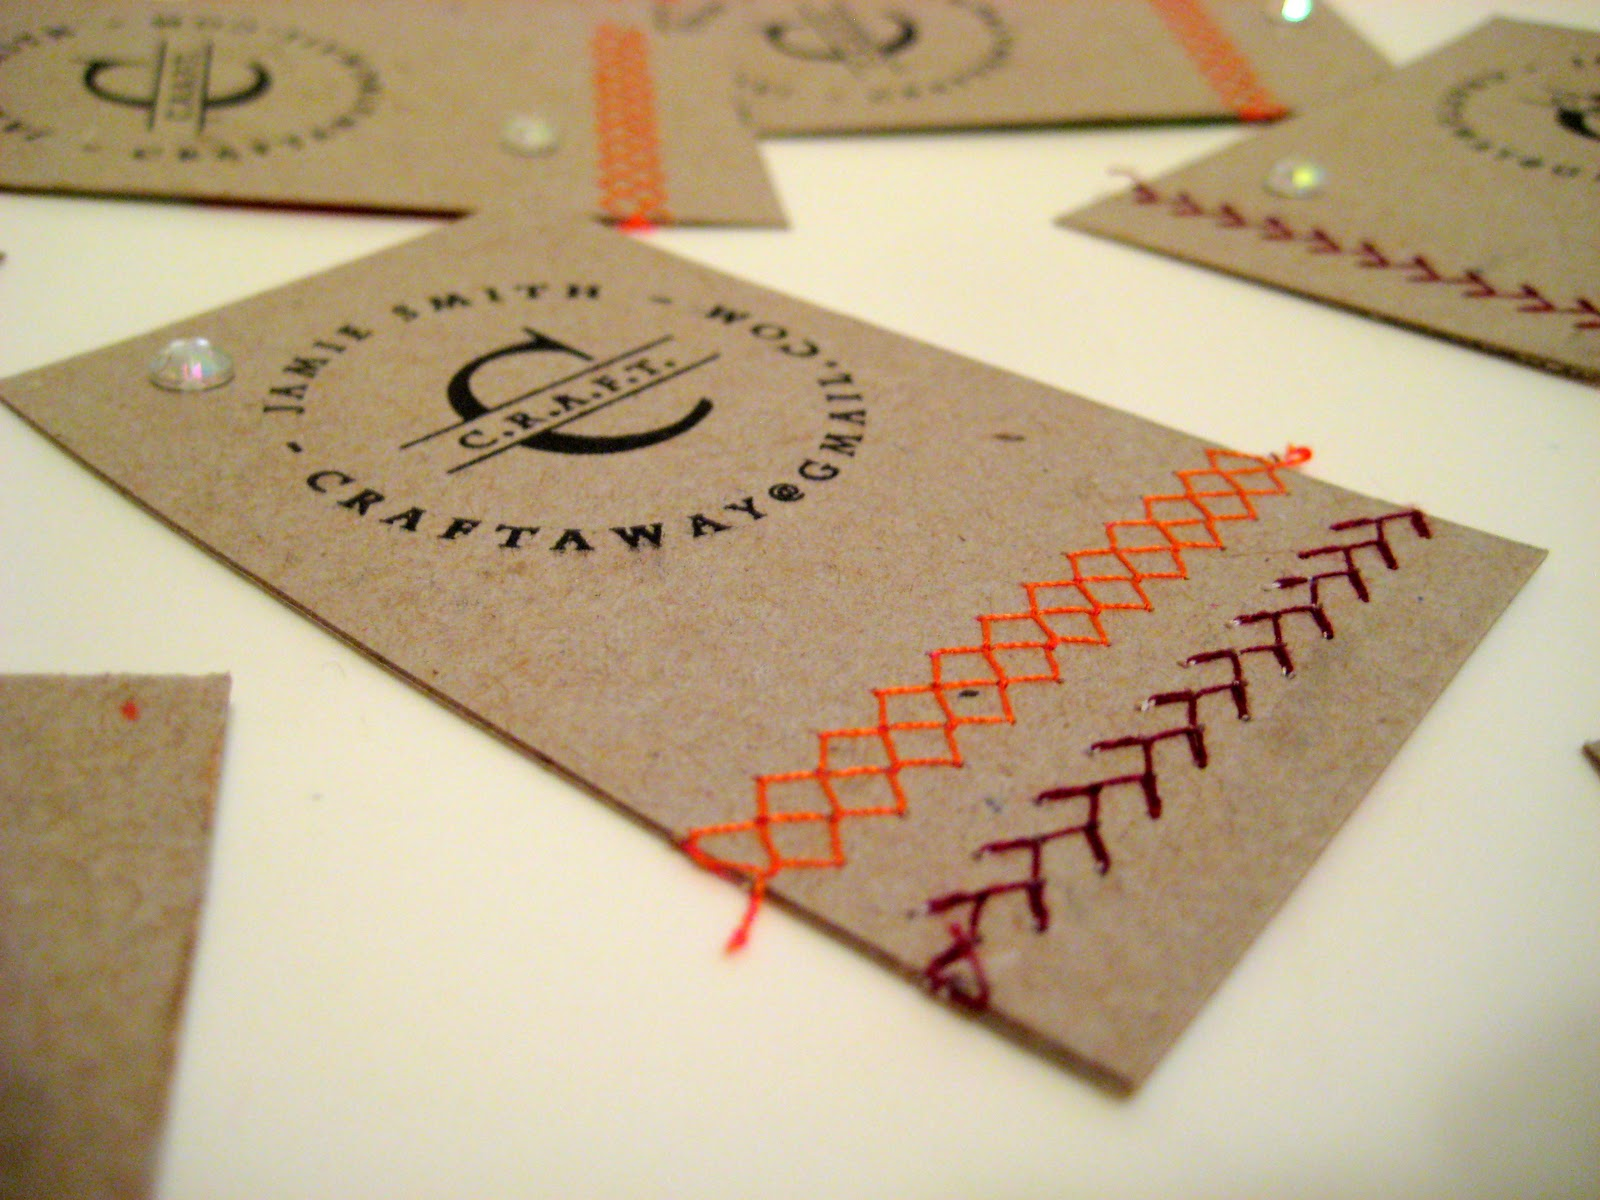 Diy business cards think crafts by createforless for Home craft business ideas